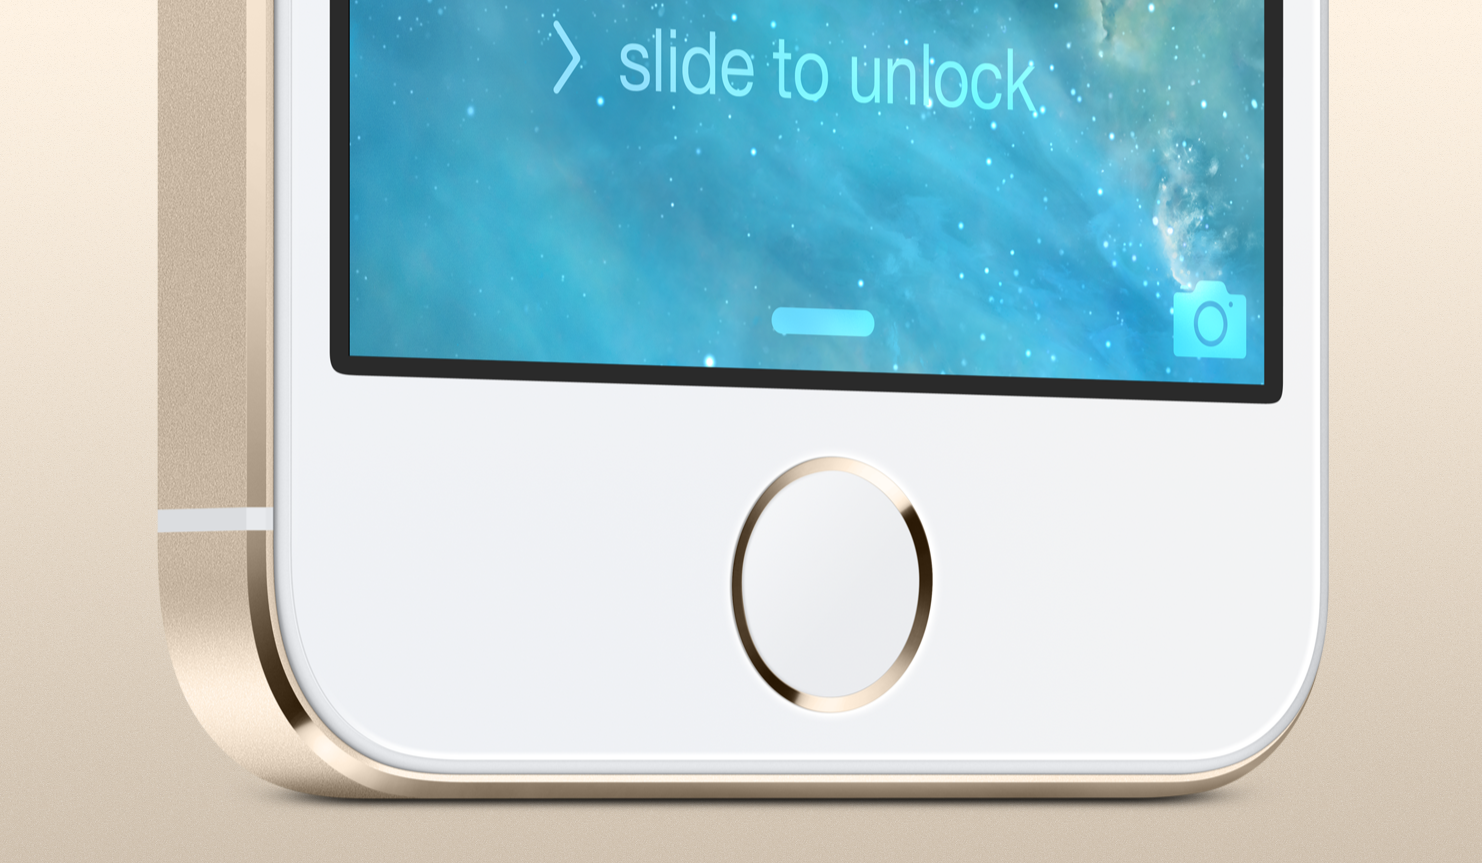 slide_to_unlock